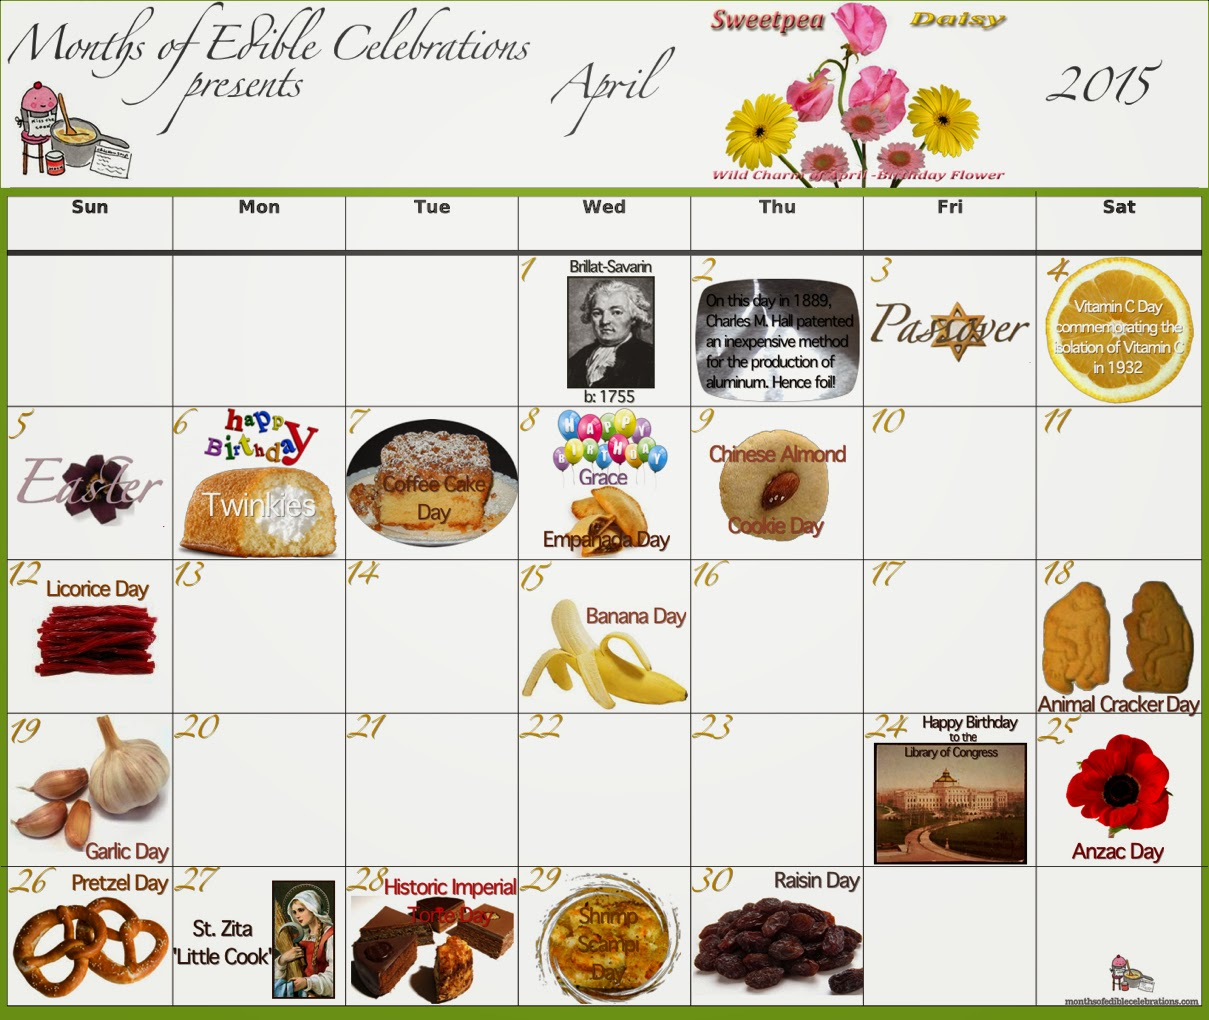 April Food Celebrations